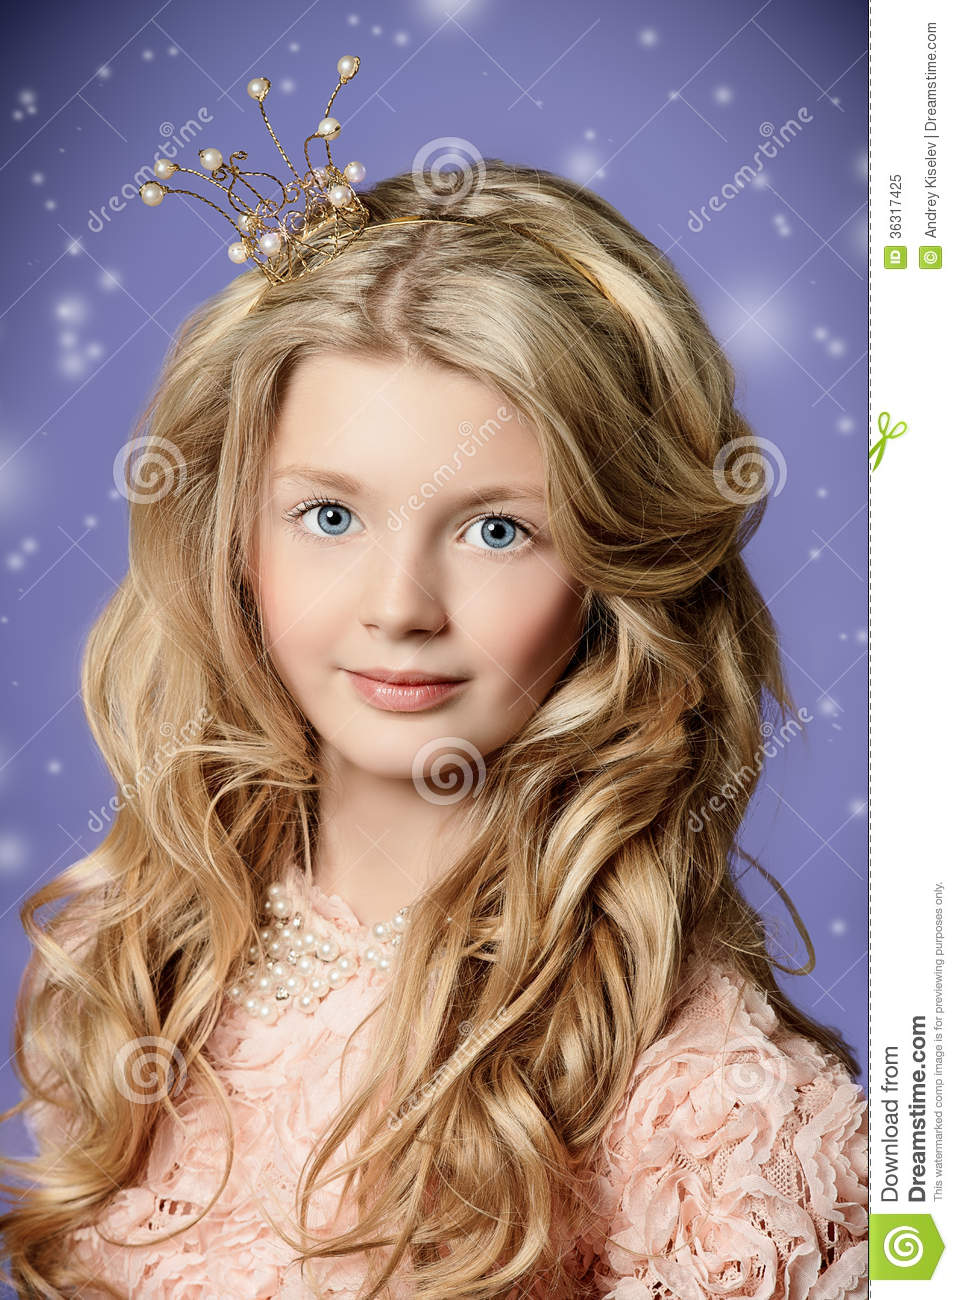 ... girl who looks like a little princess with a crown on her head